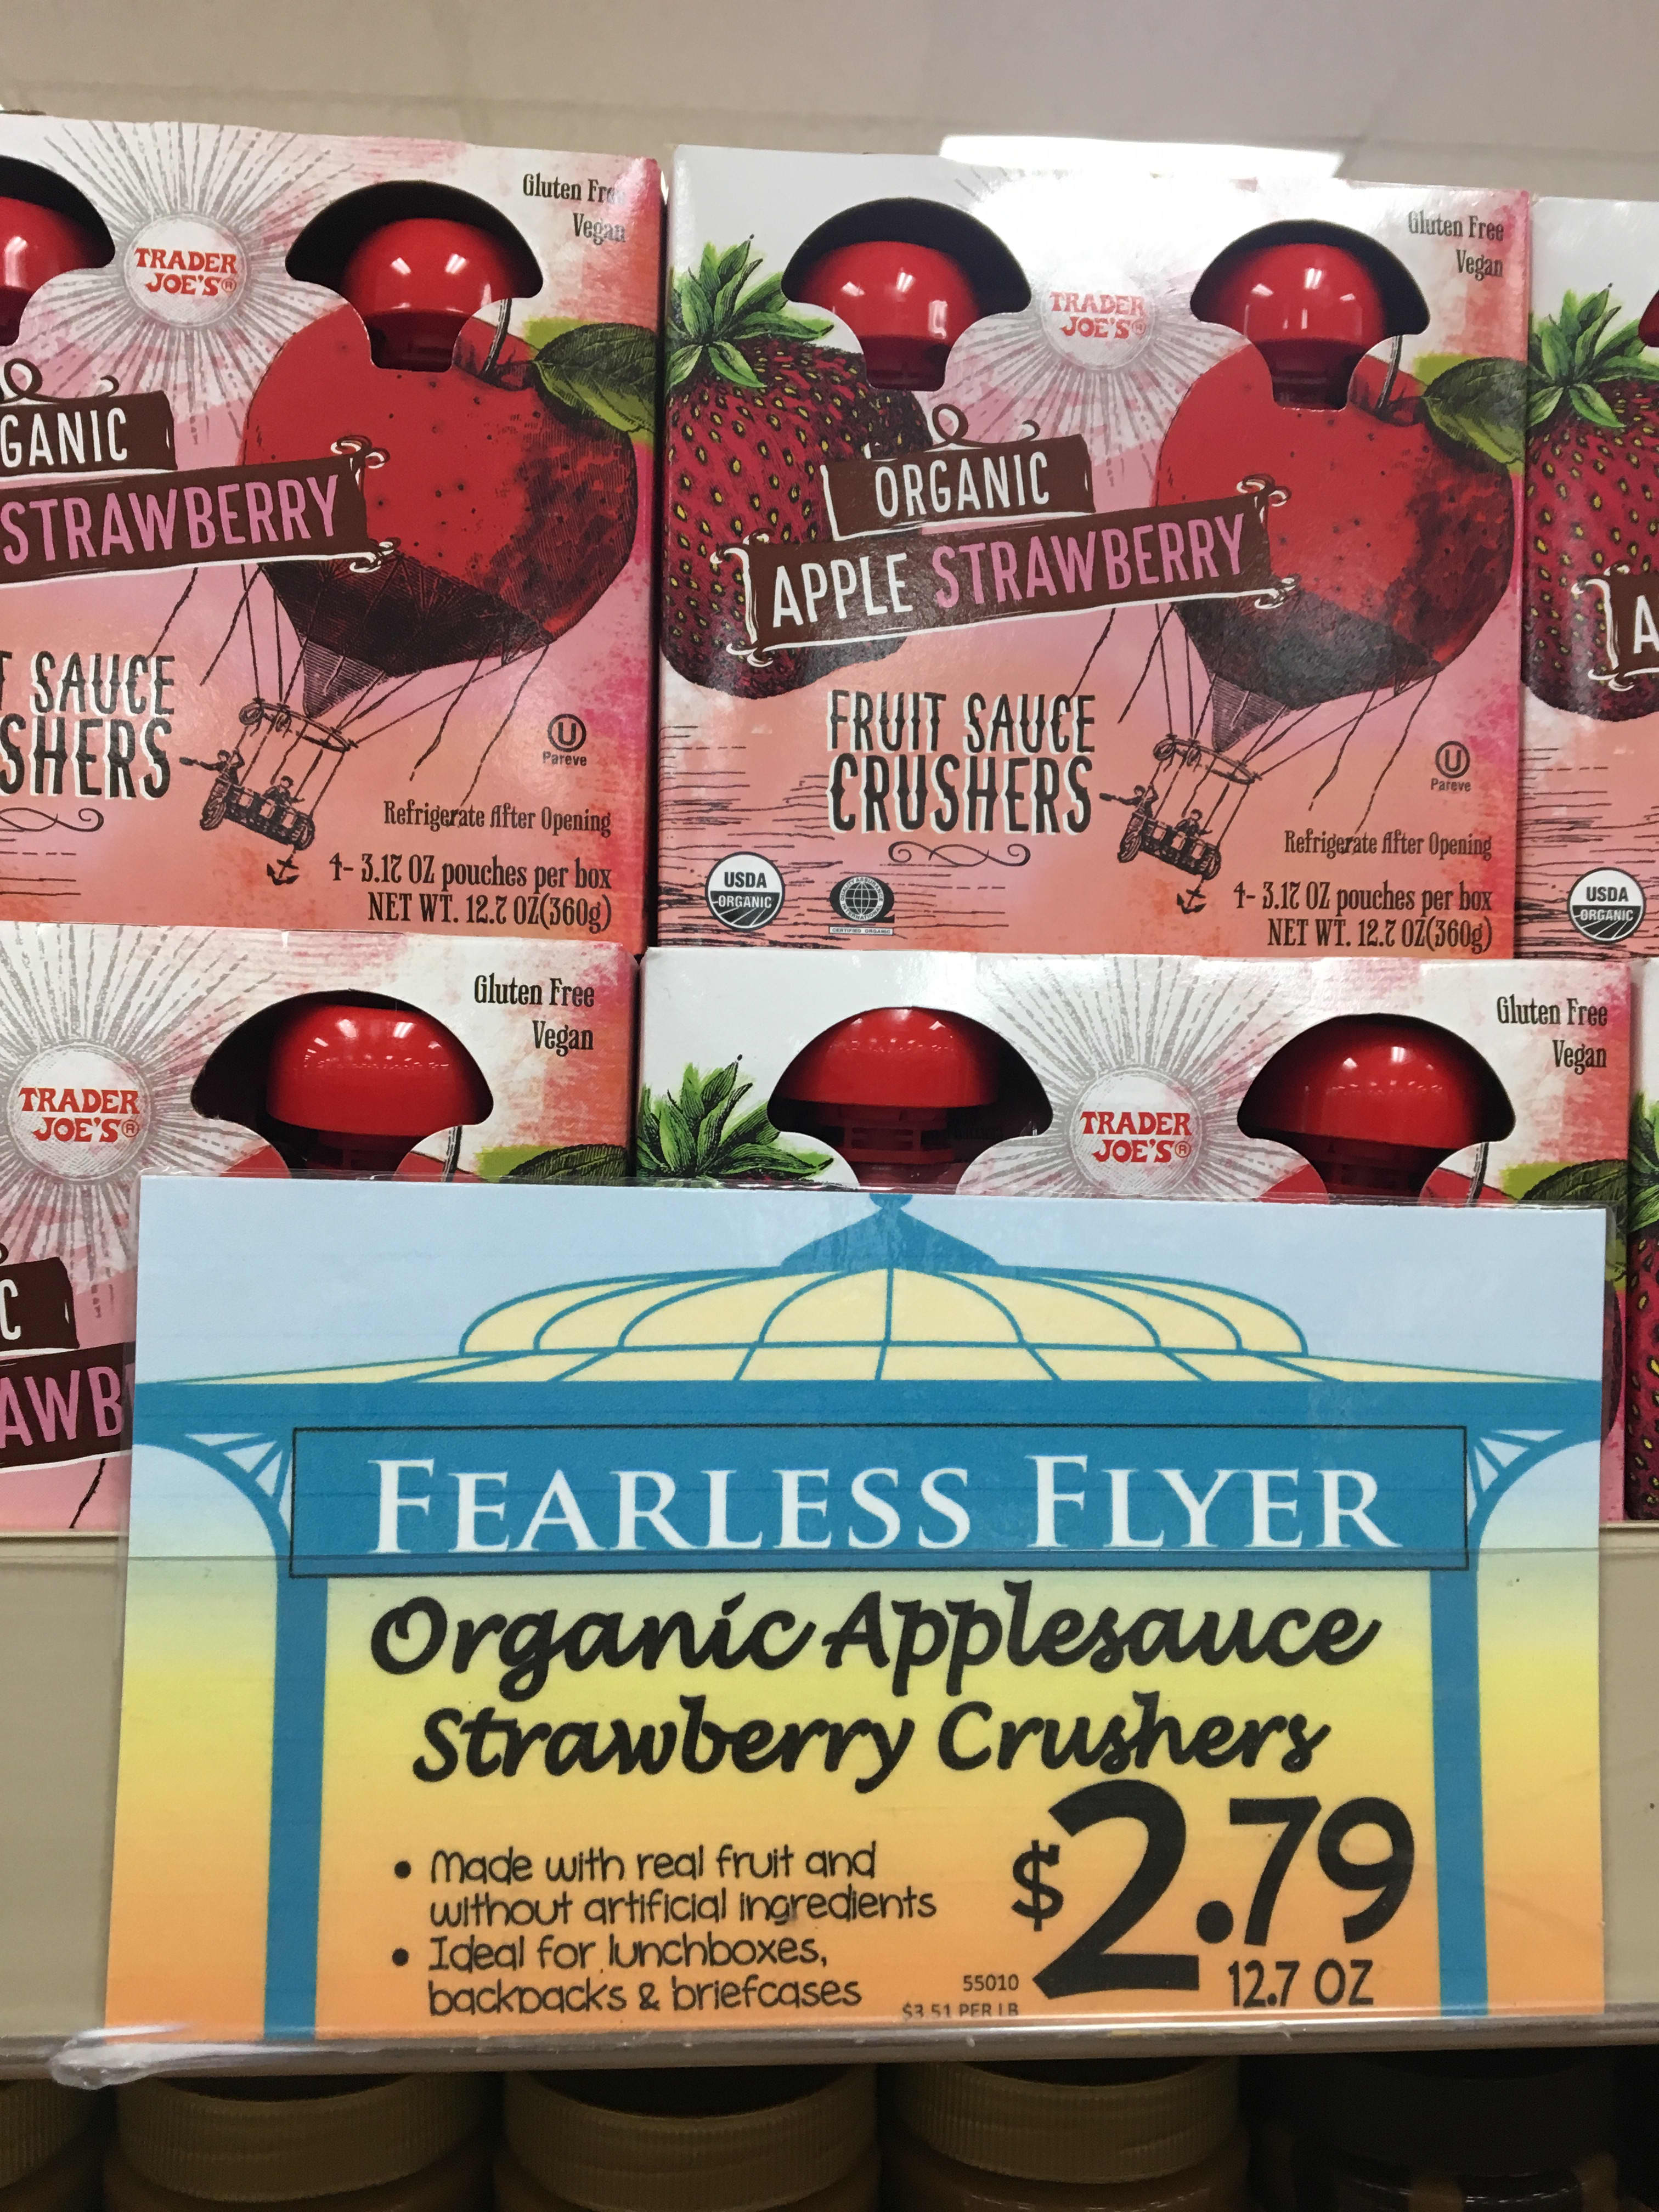 15 Lunch Box Snacks You Should Add to Your Trader Joe's Shopping List: gallery image 15